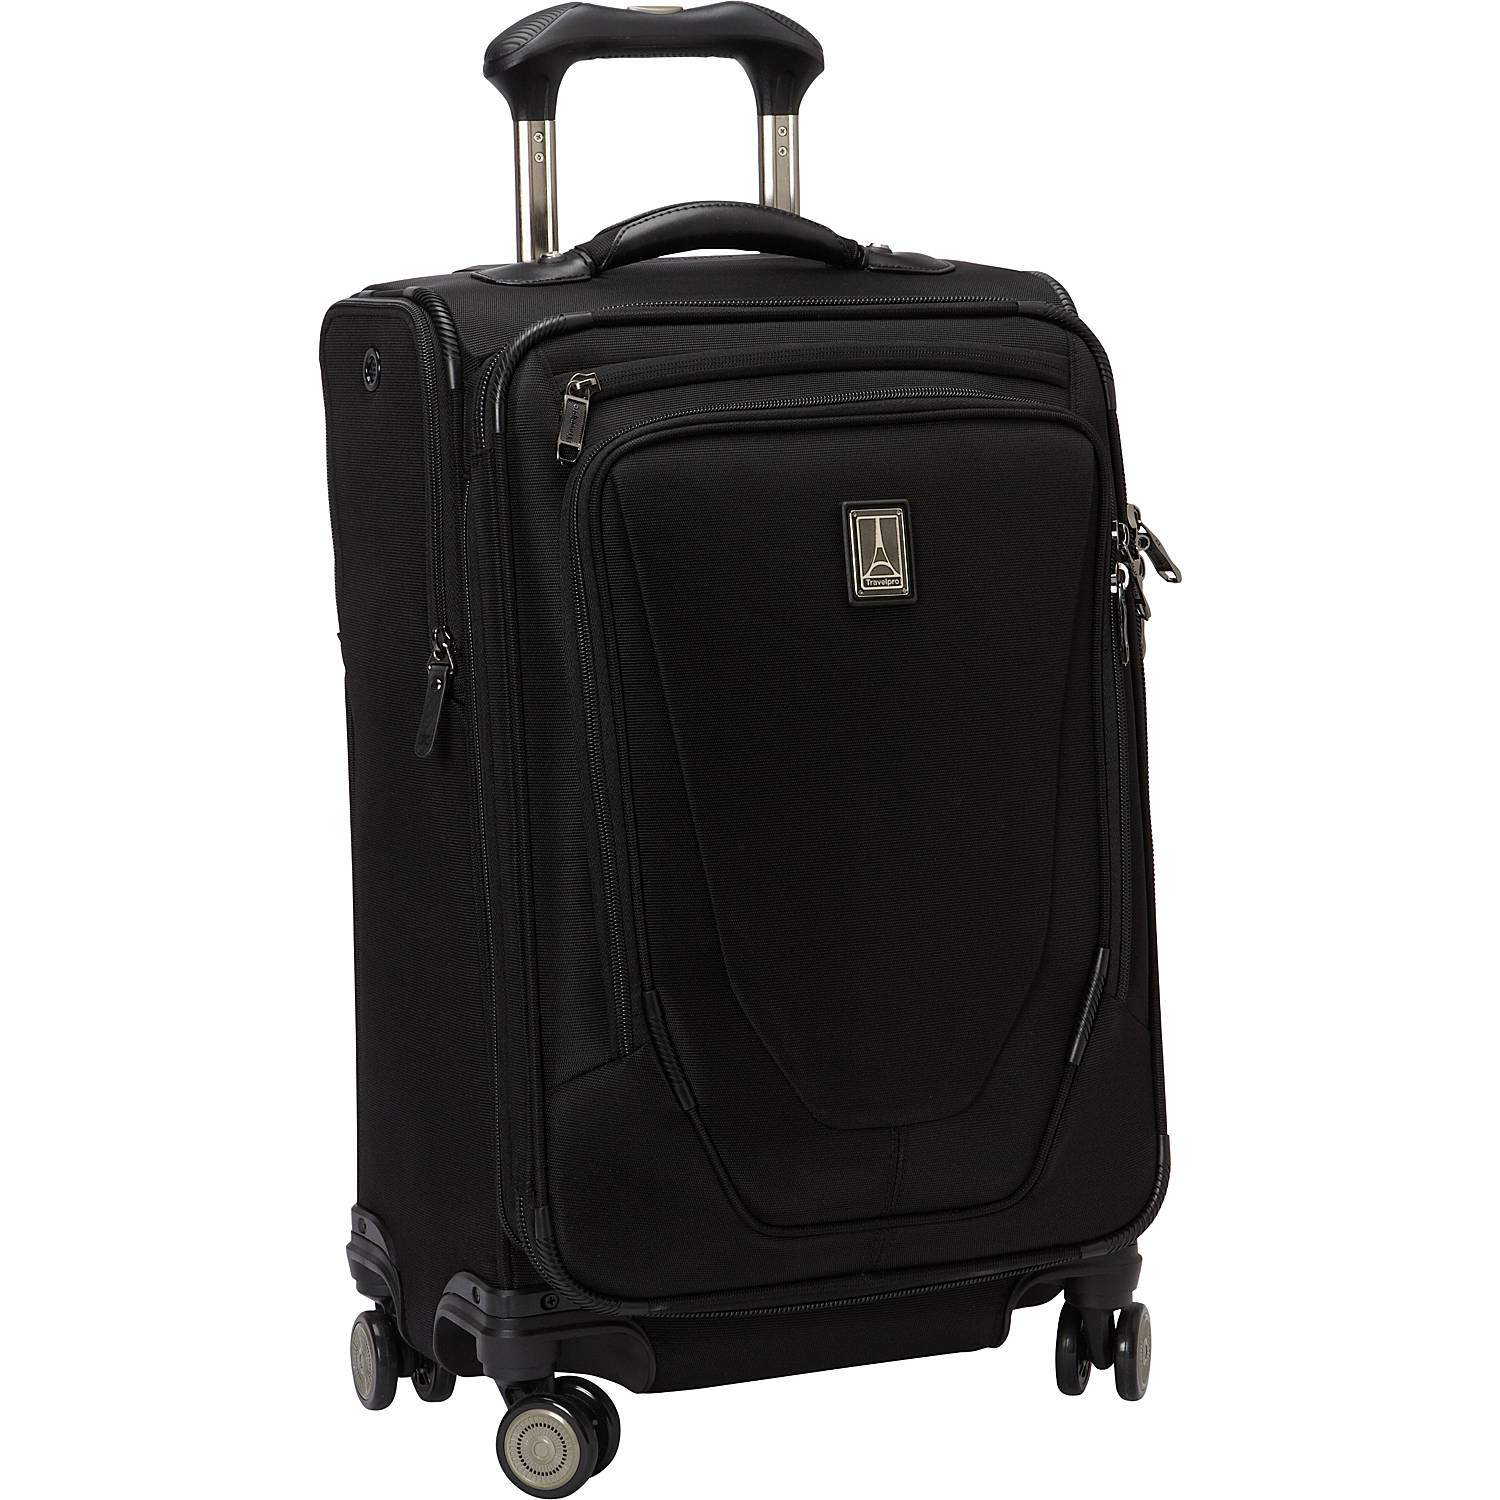 Best Luggage Brands 2020.The 8 Best Carry On Luggage For Women In 2019